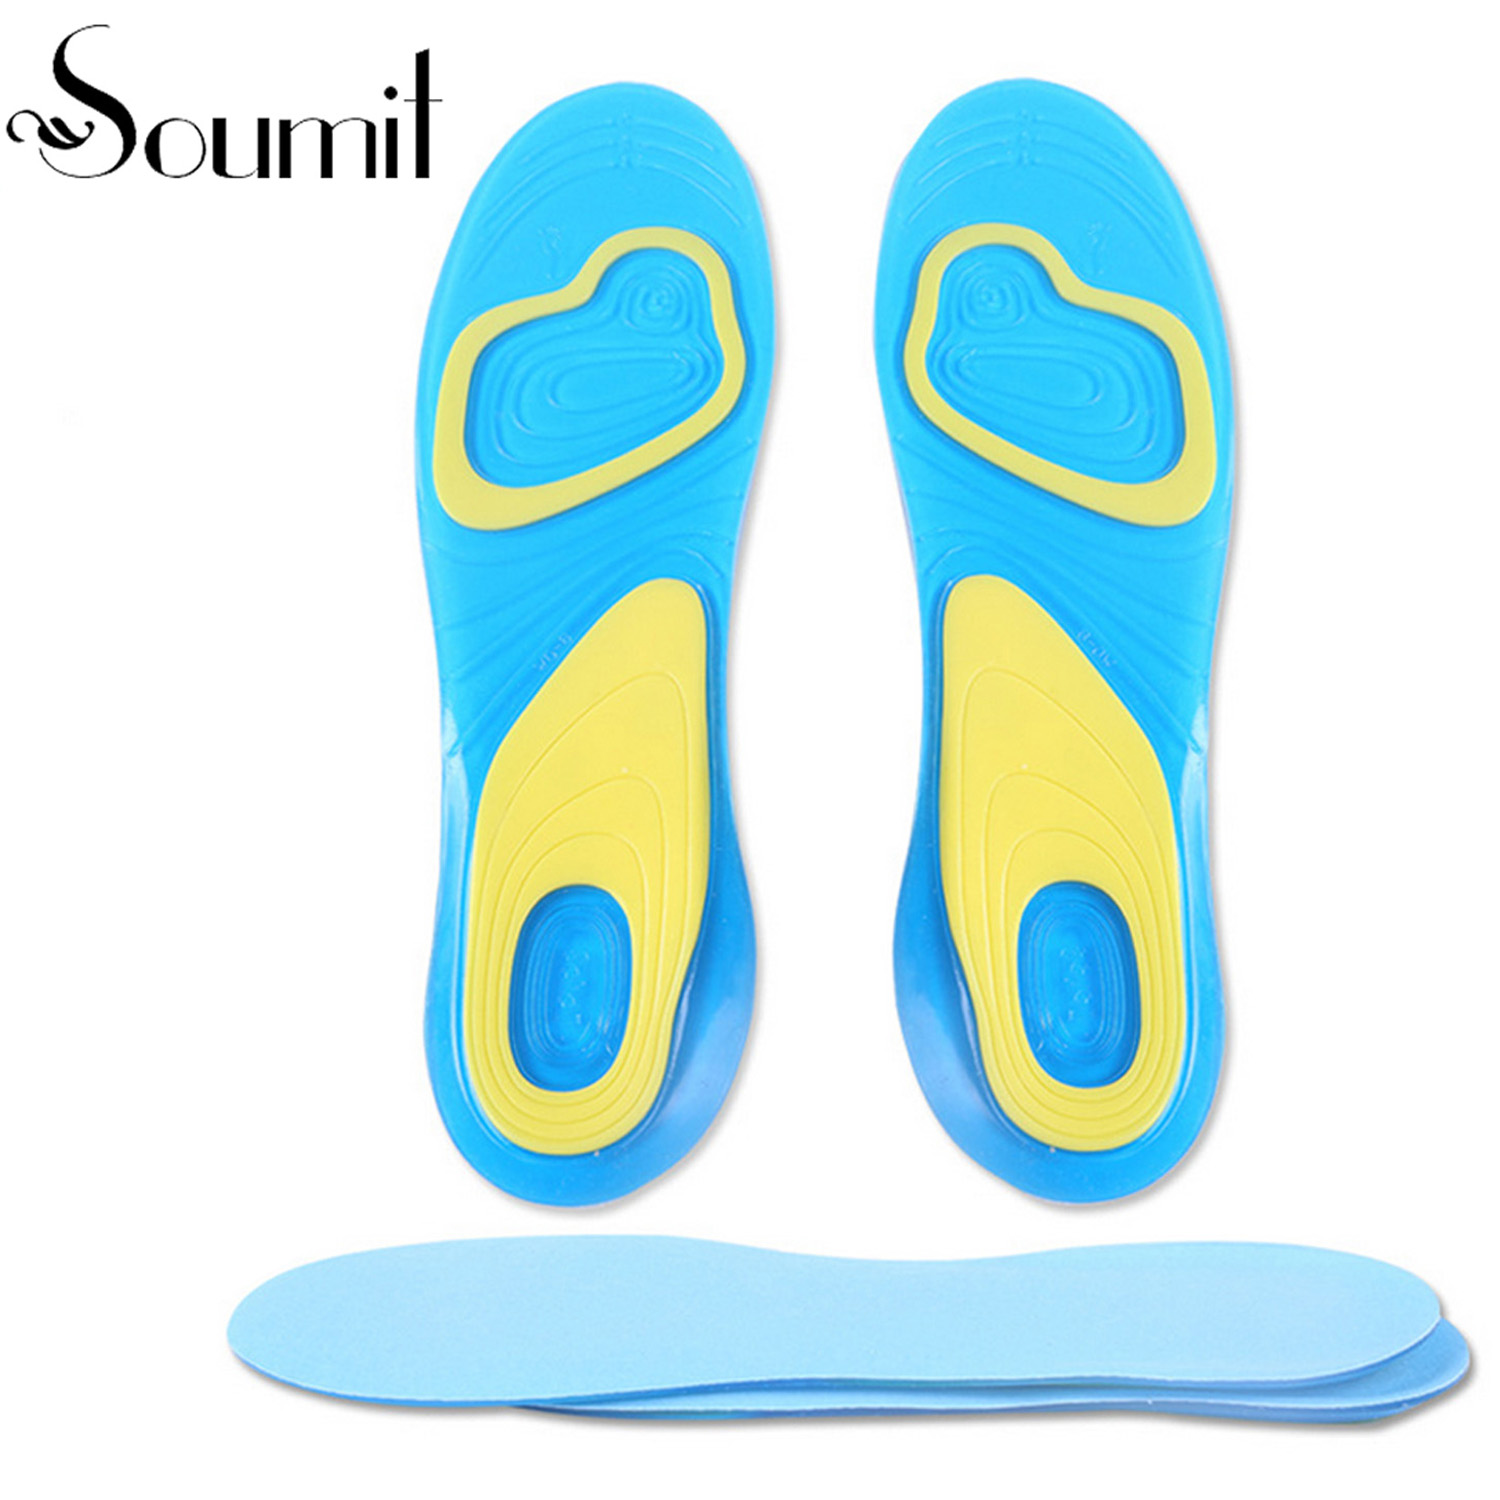 Full Length Sports Soft Silicone Gel Air Cushion Insole Hiking Running Shoe Insoles Pads Absorb Shock Footbed for Men and Women sports silicone massaging gel insole for men women shoes comfortable cushion hot selling